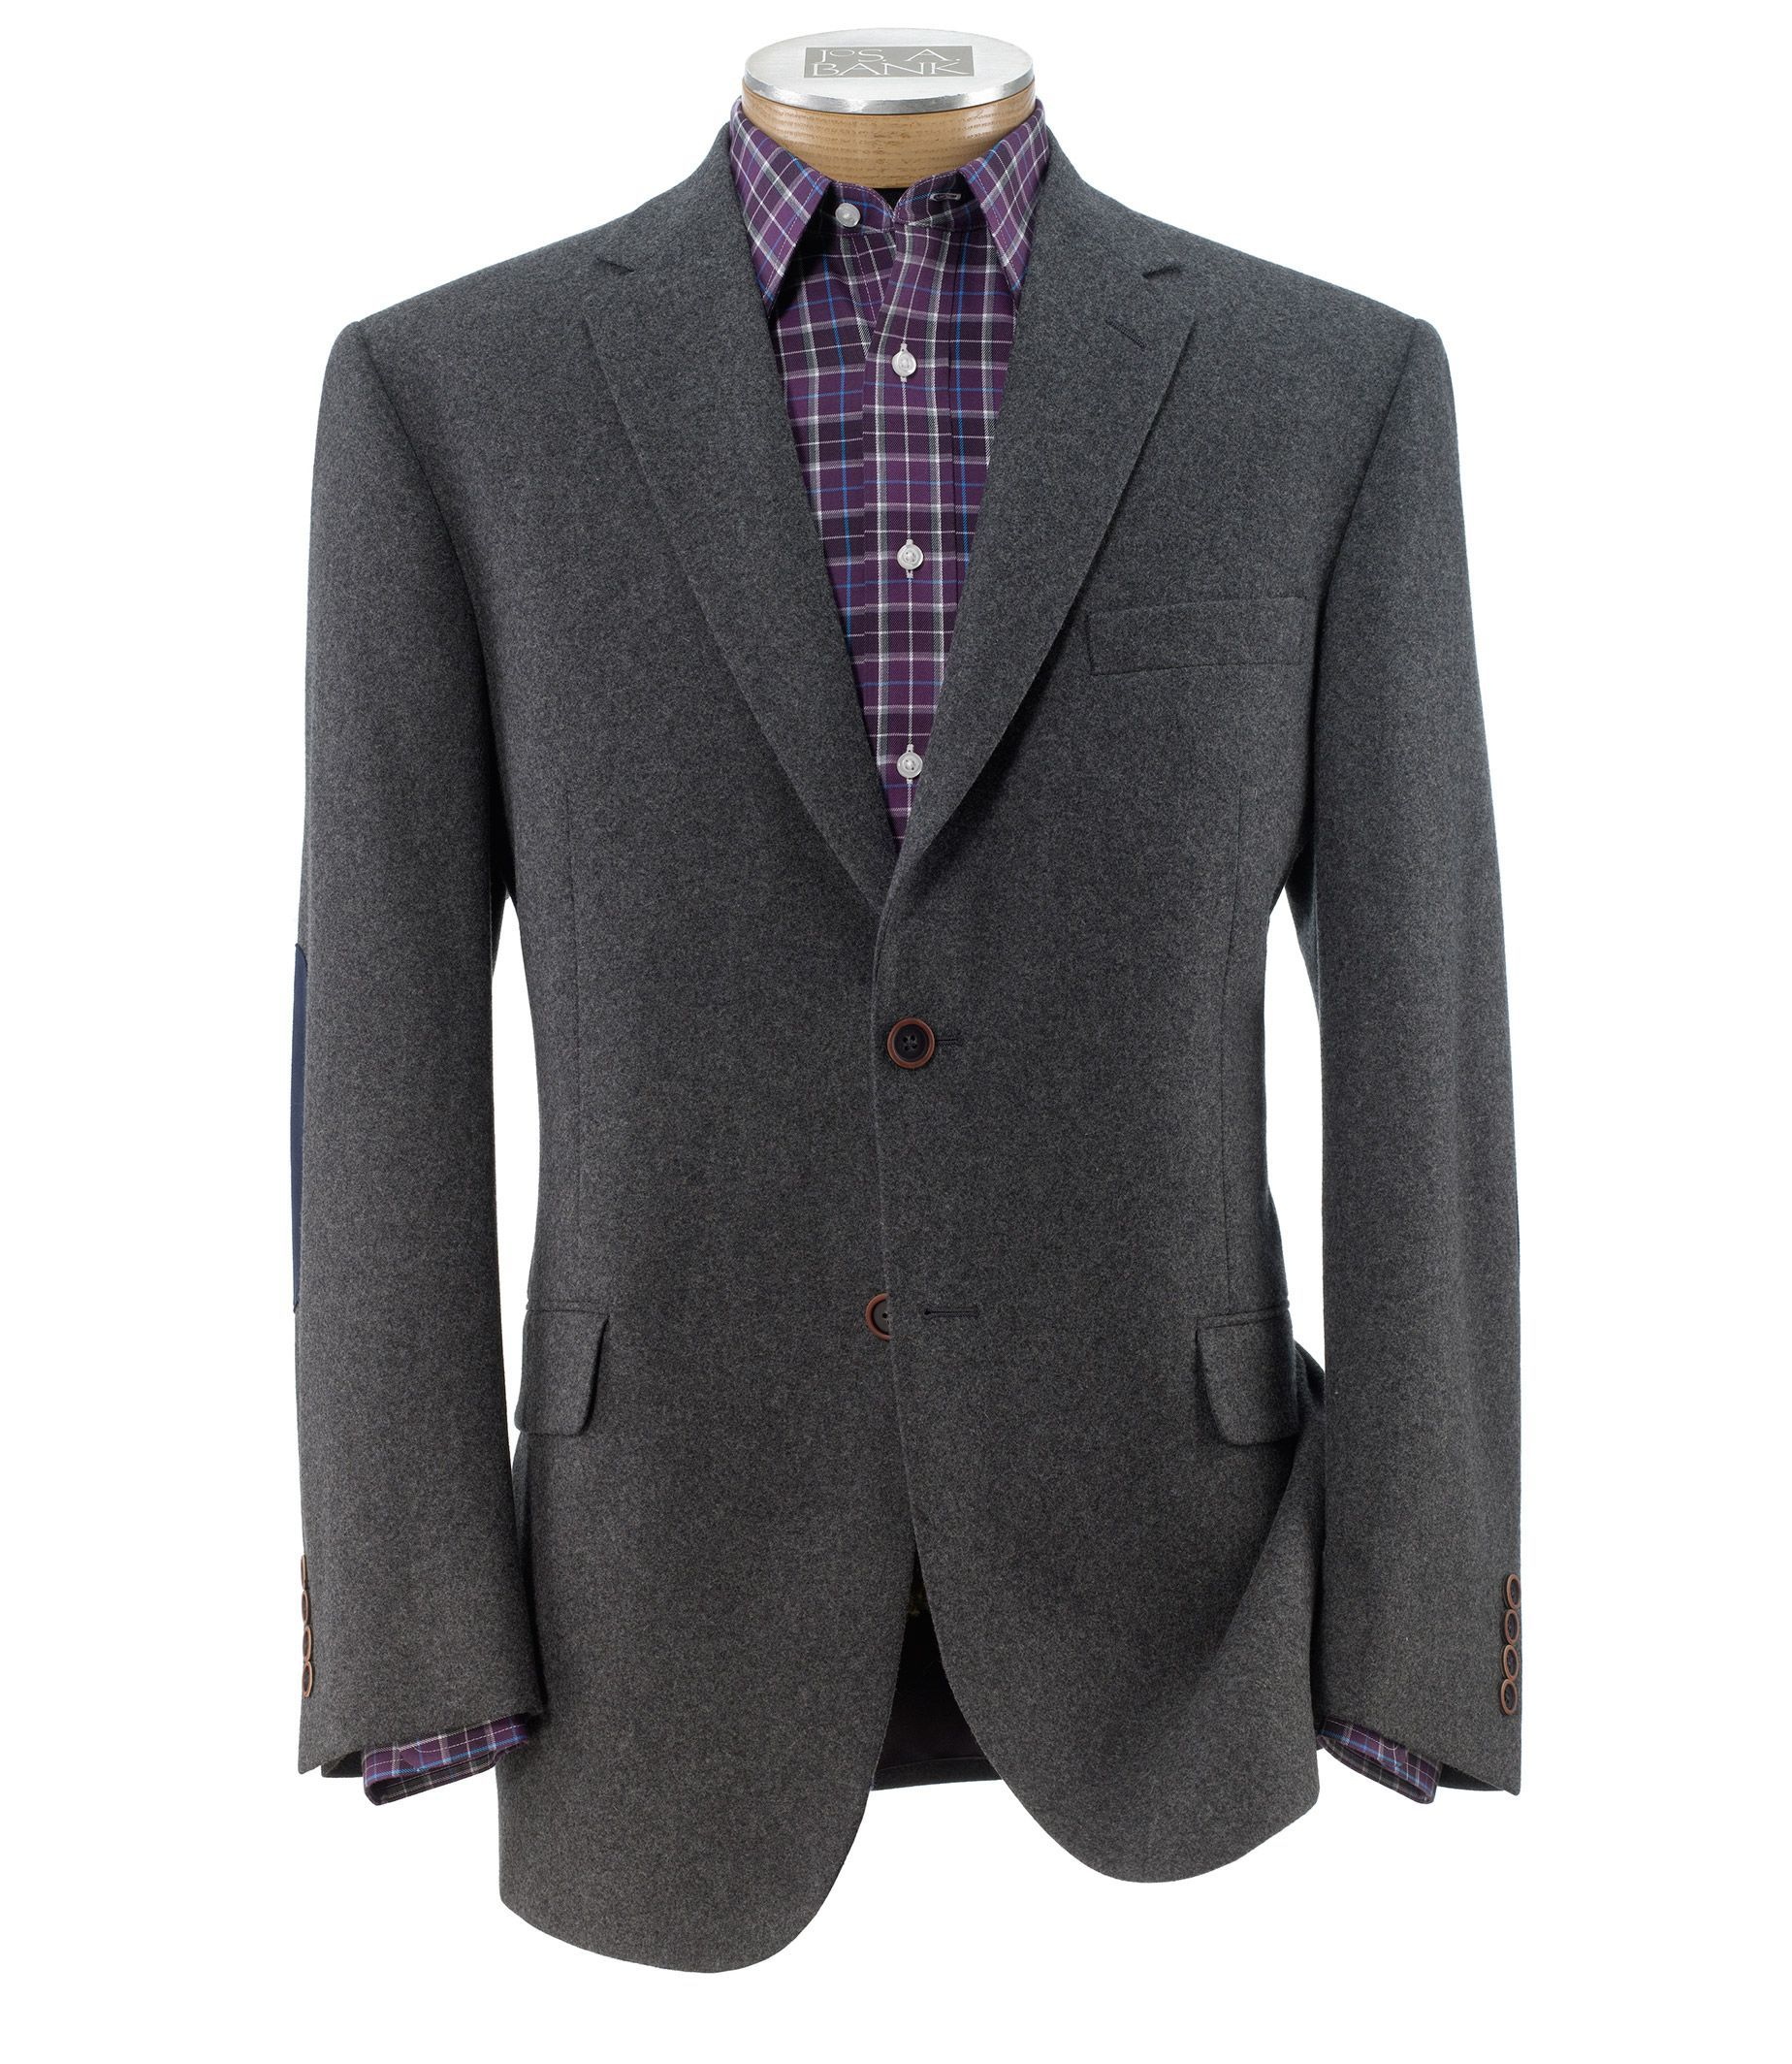 Jos. A. Bank Mens Heritage Tailored Fit 2-Button Sportcoat (Multi Colors)